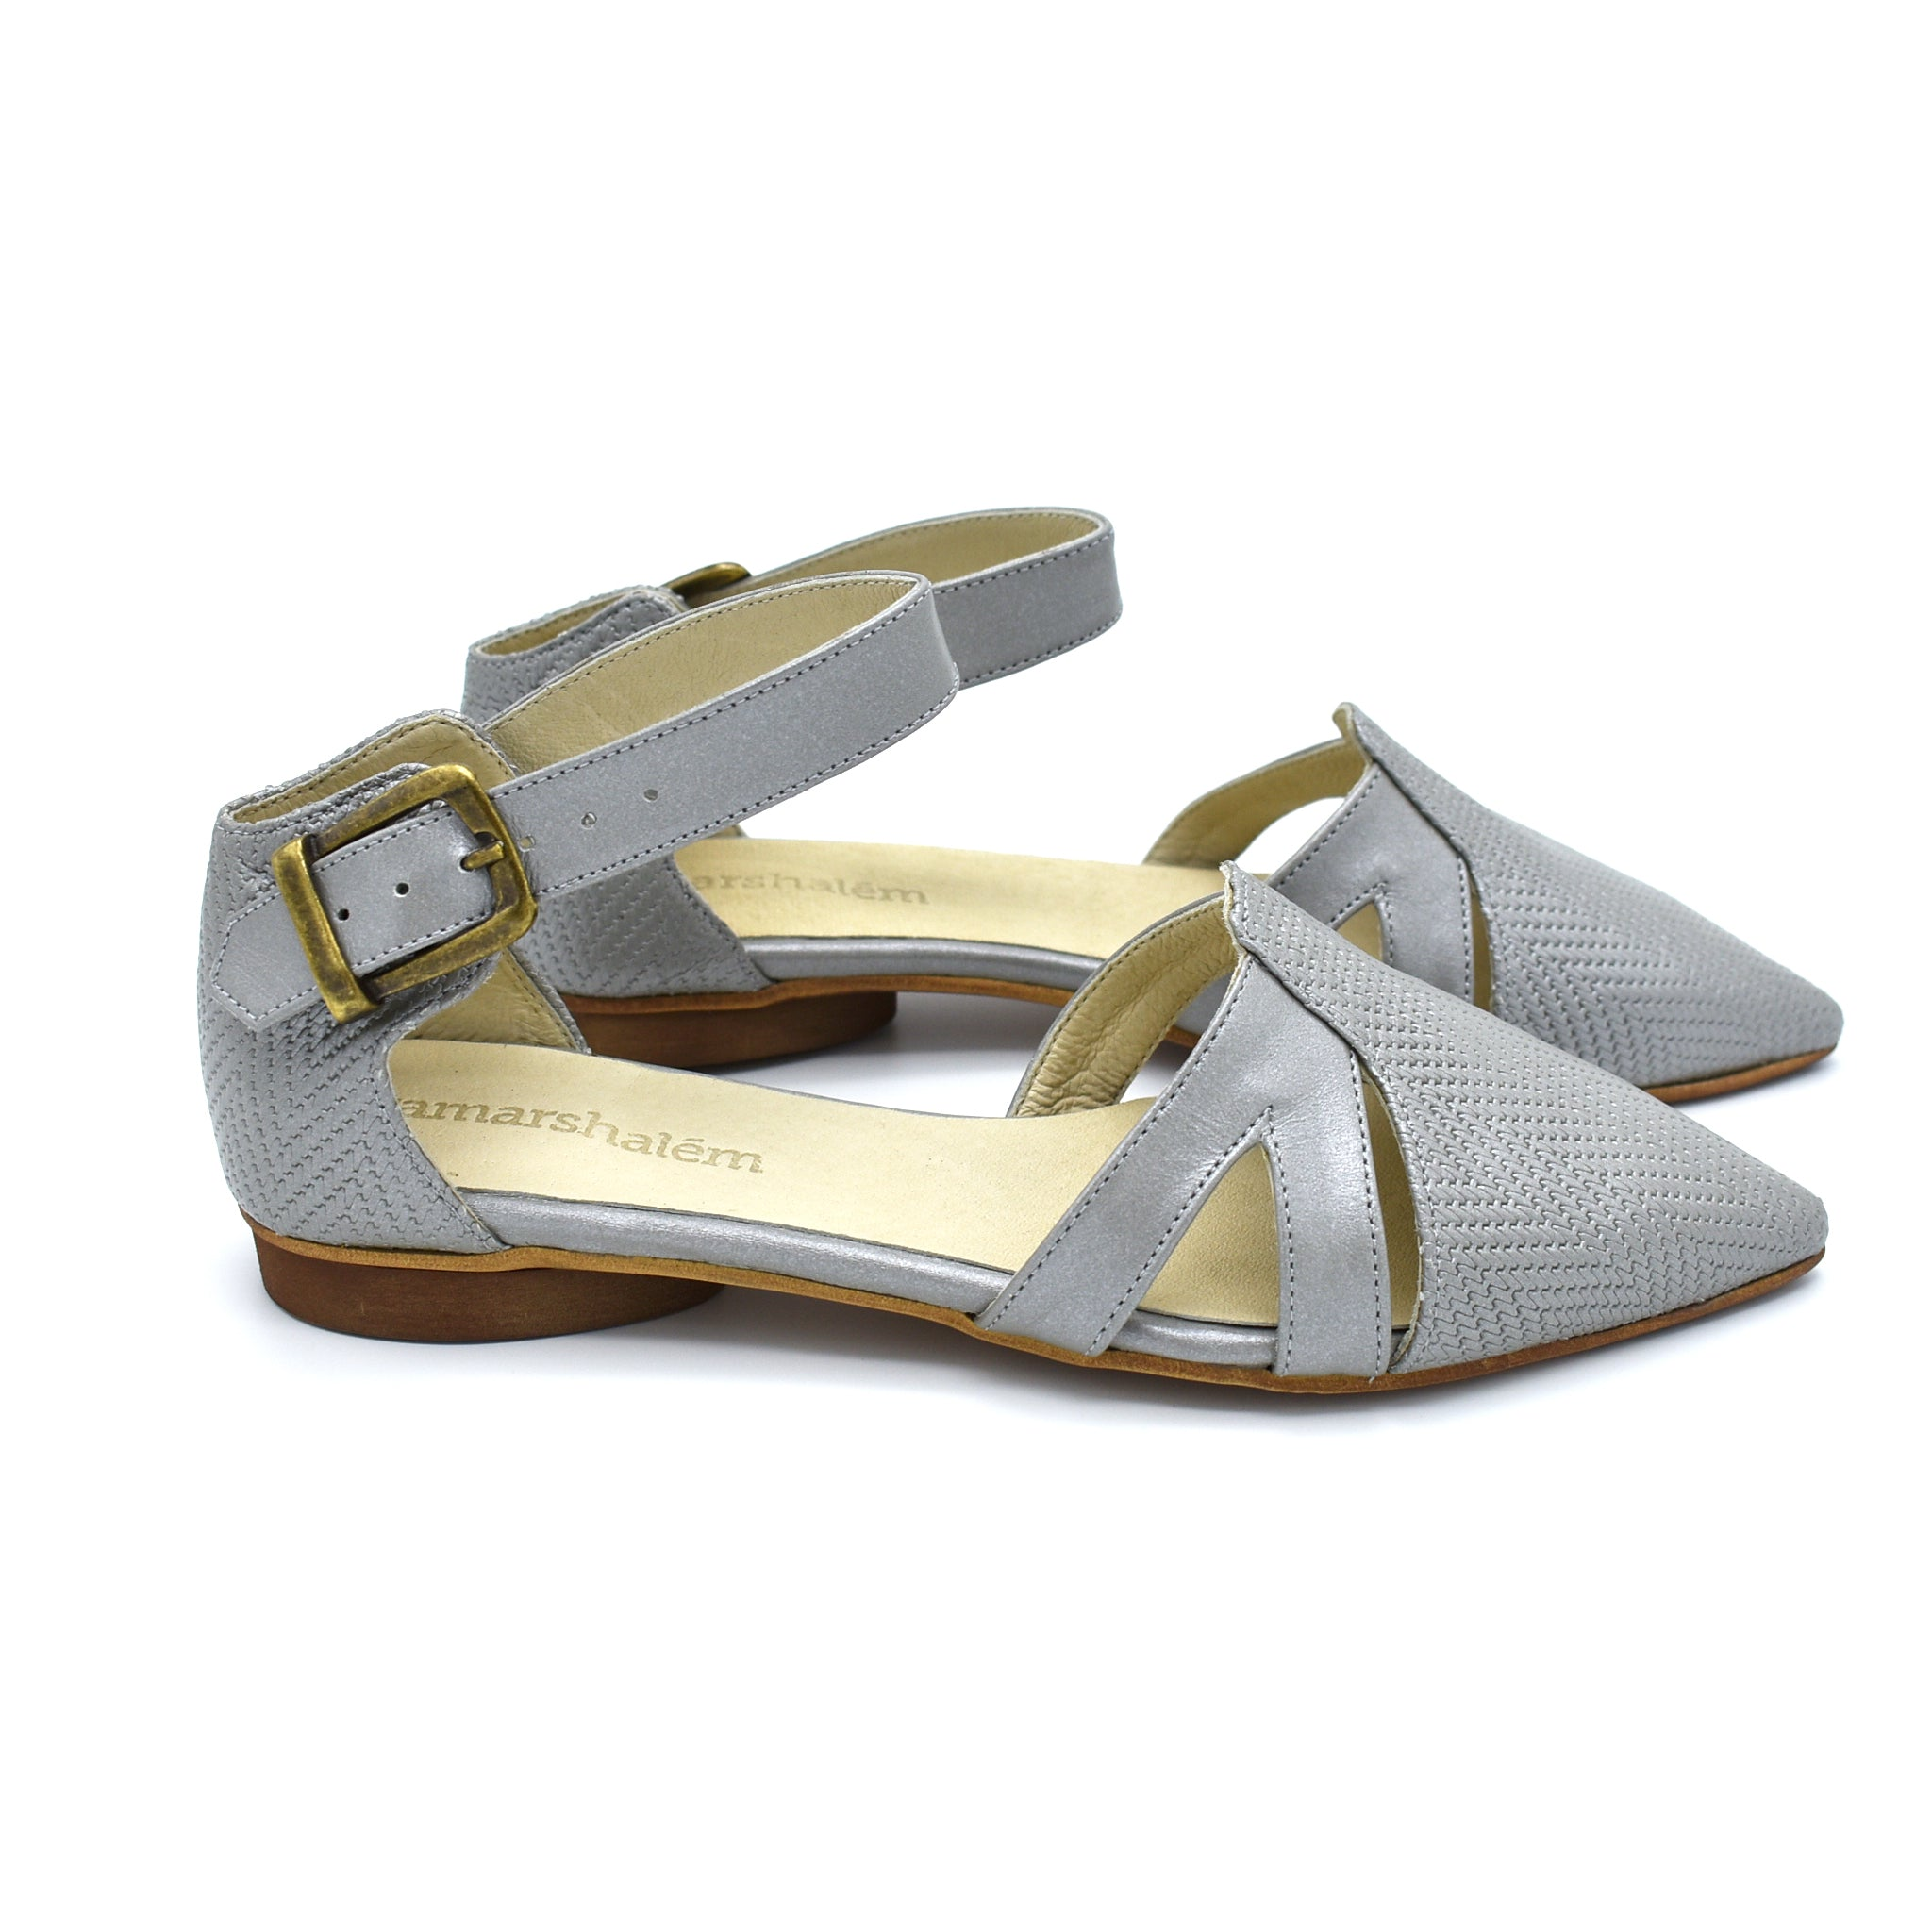 Vivian buckle closure sandals in silver